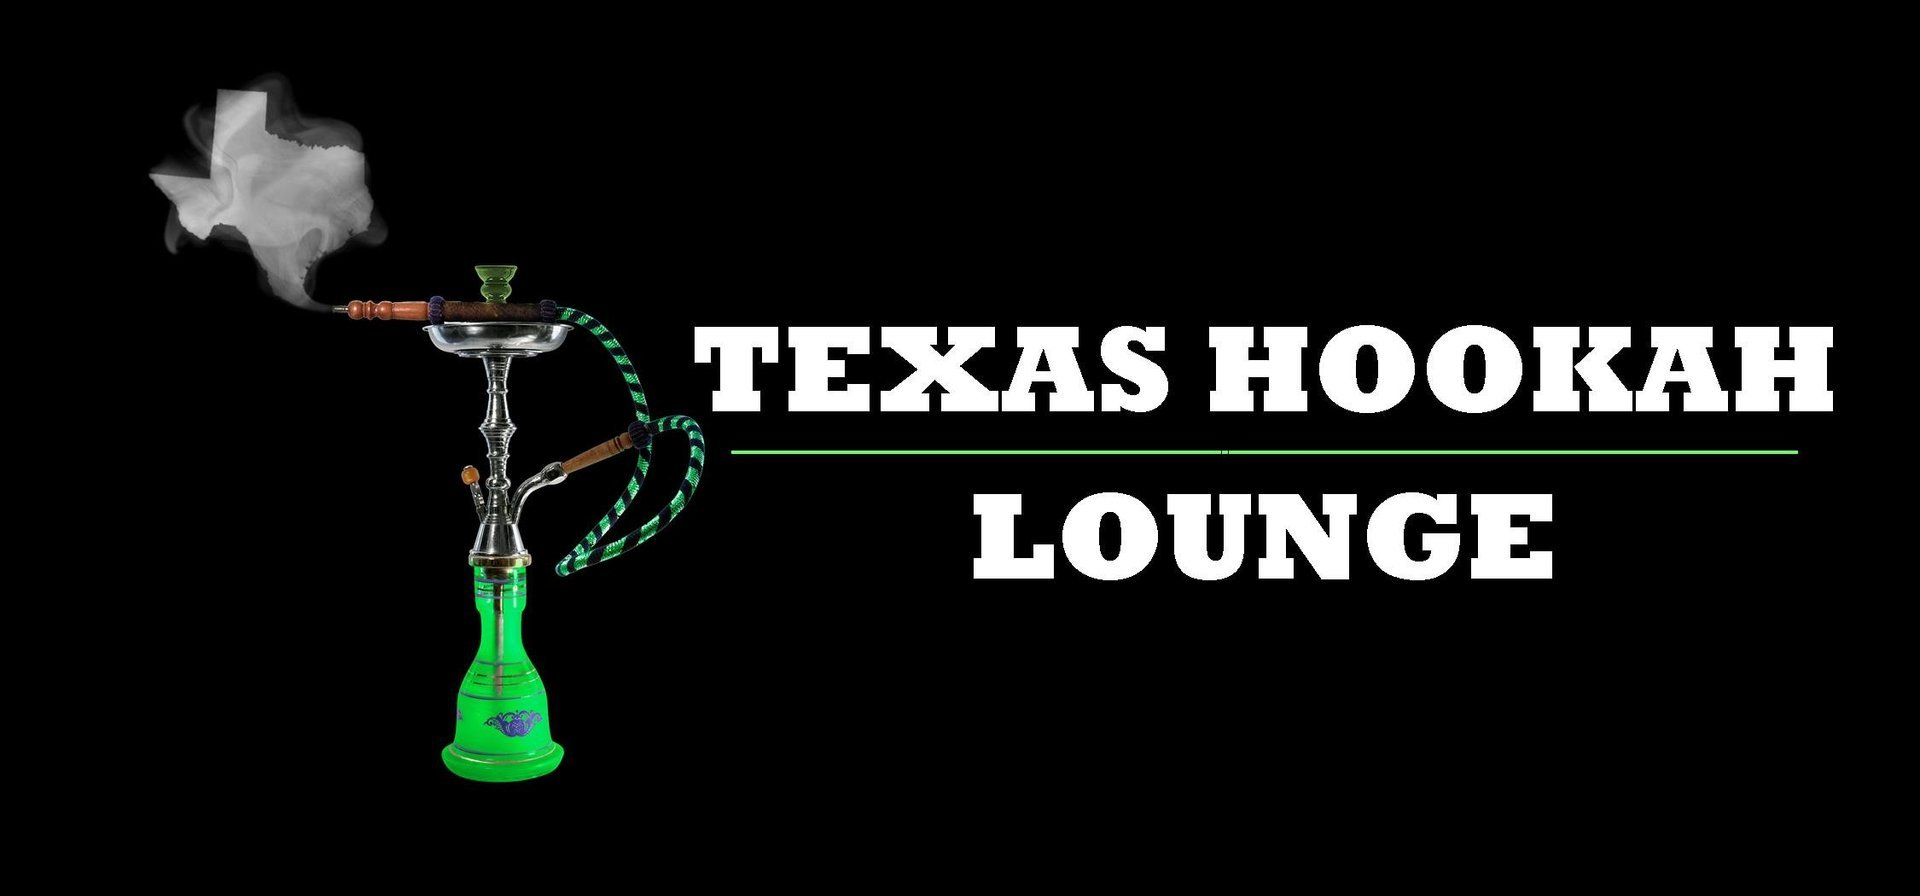 Texas Hookah Coupons Coupons for September 2018